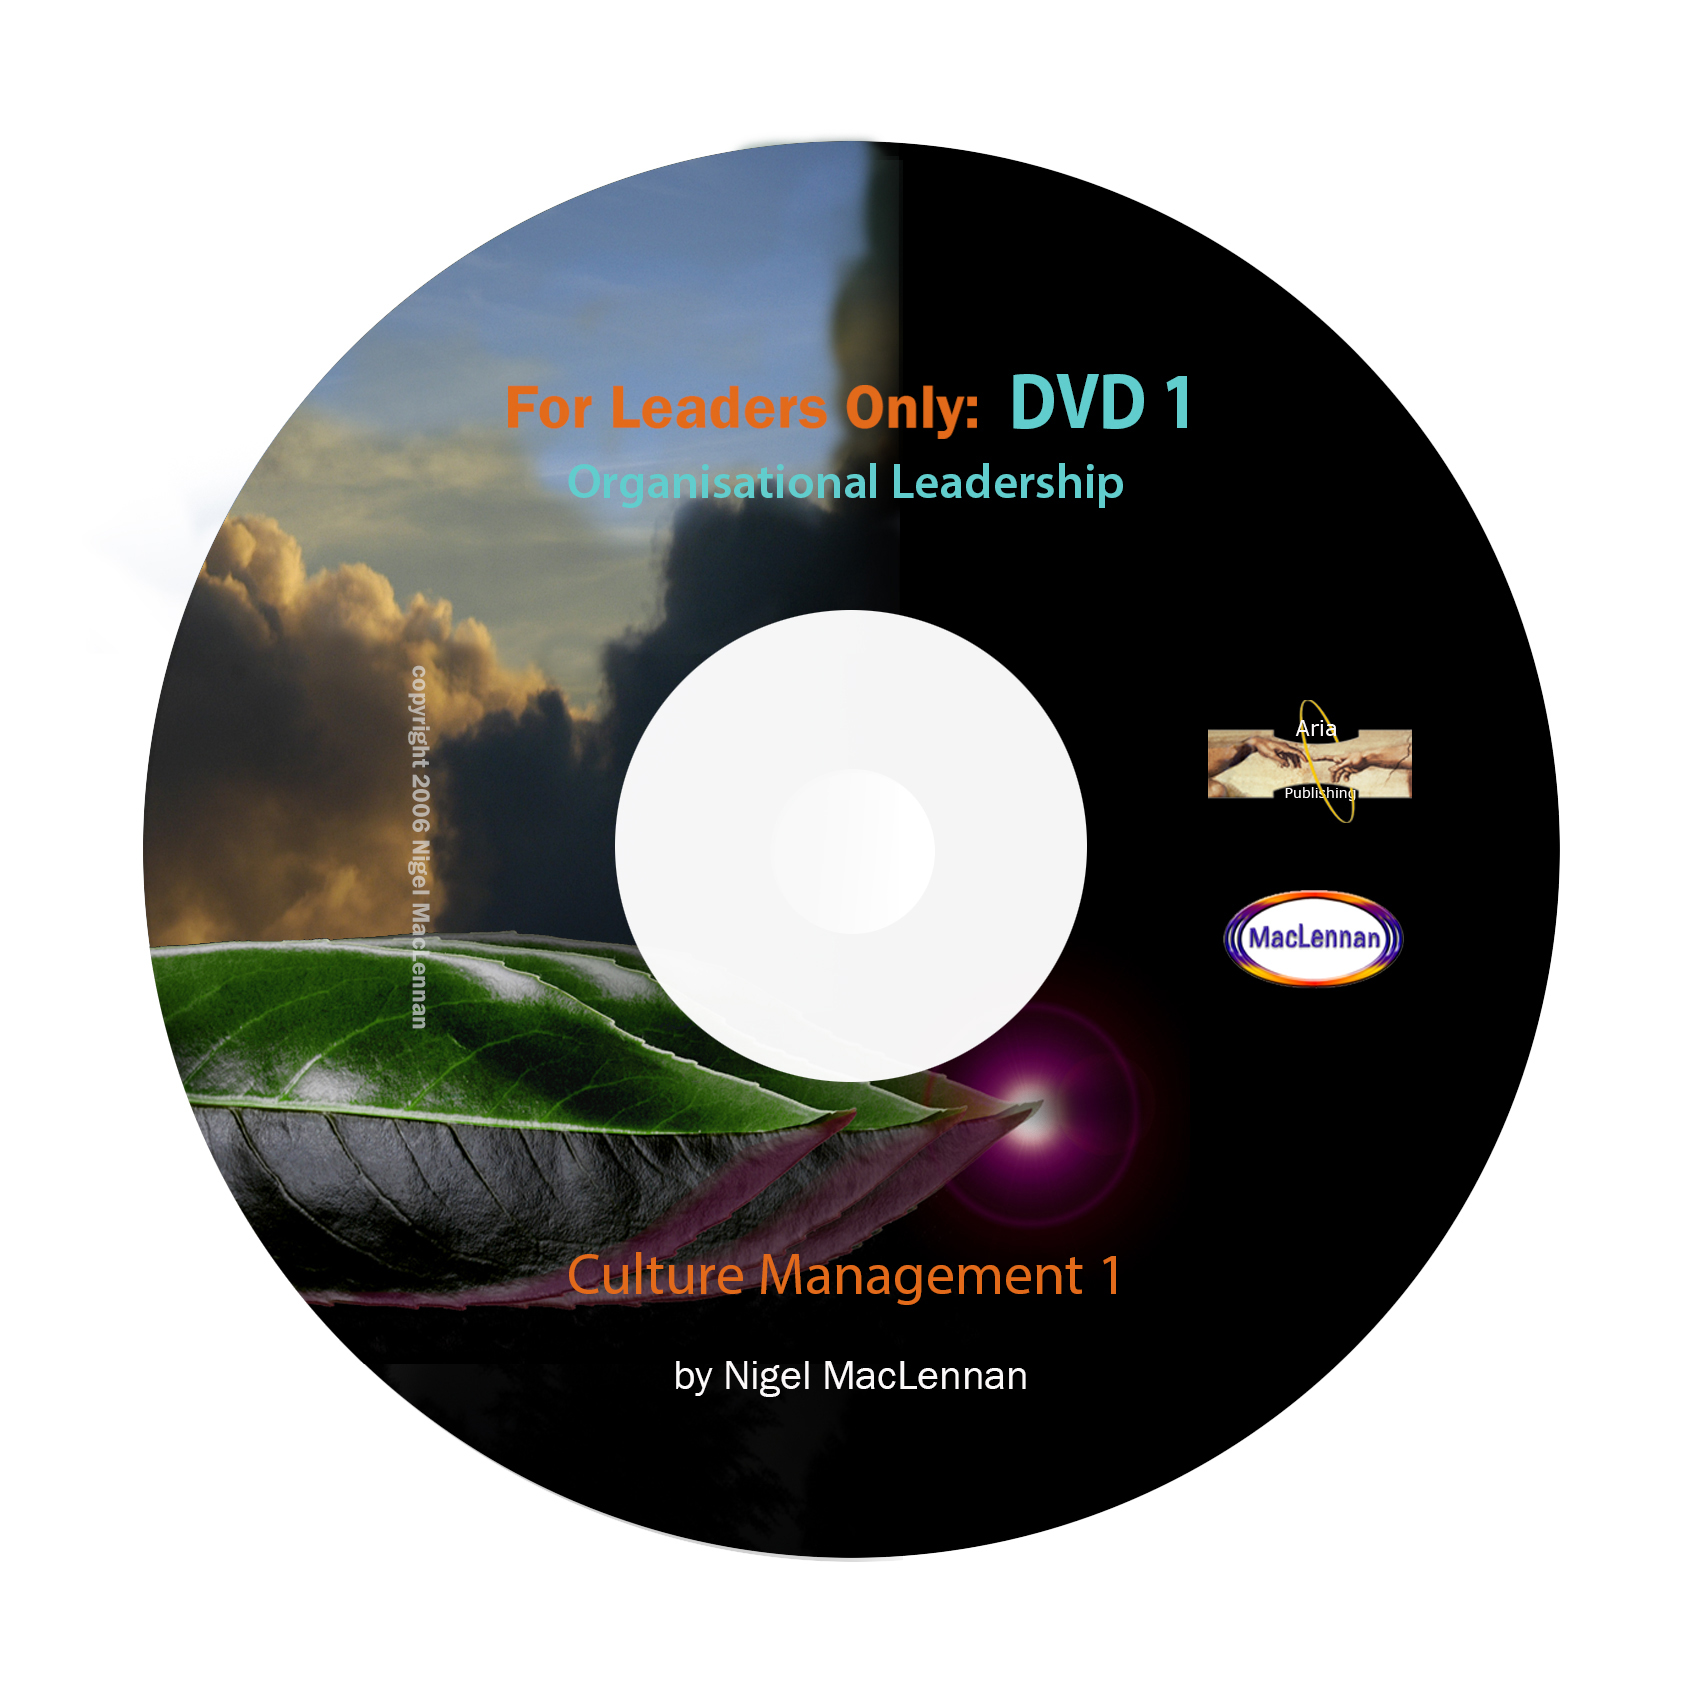 For Leaders Only - Culture Management 1 DVD